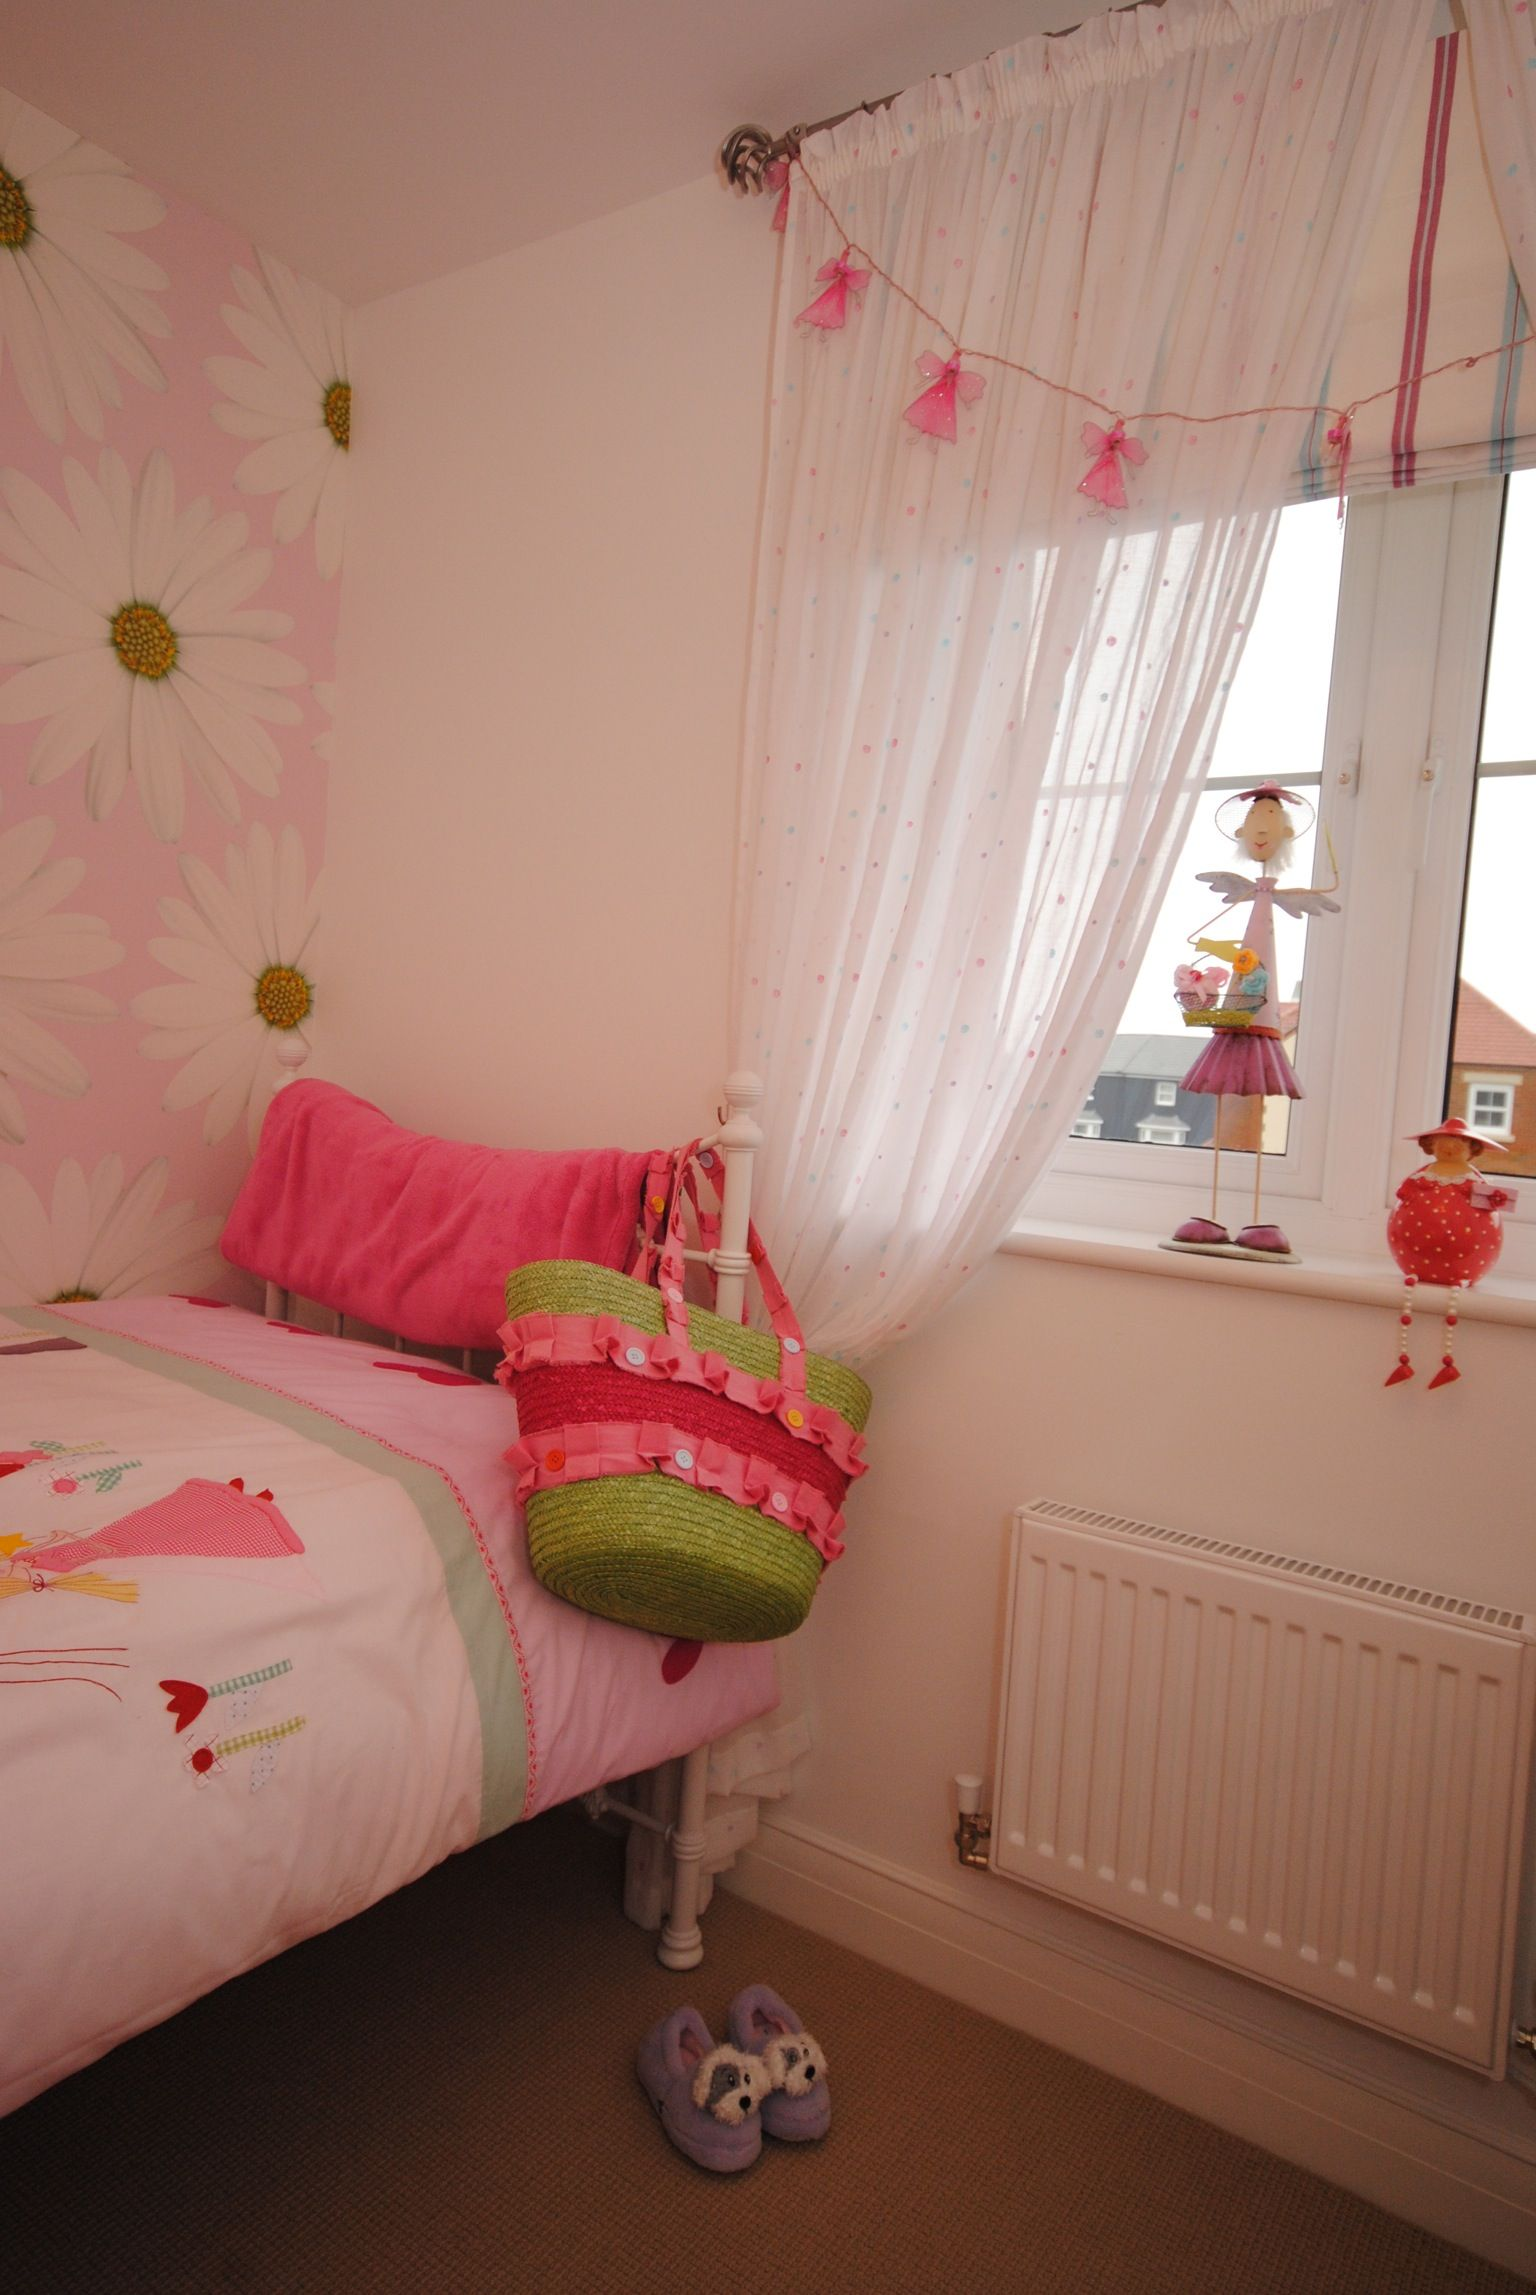 S Bedroom Design Wallpaper Bunting Voile Curtains Roman Blind Curtain Pole And Duvet Cover